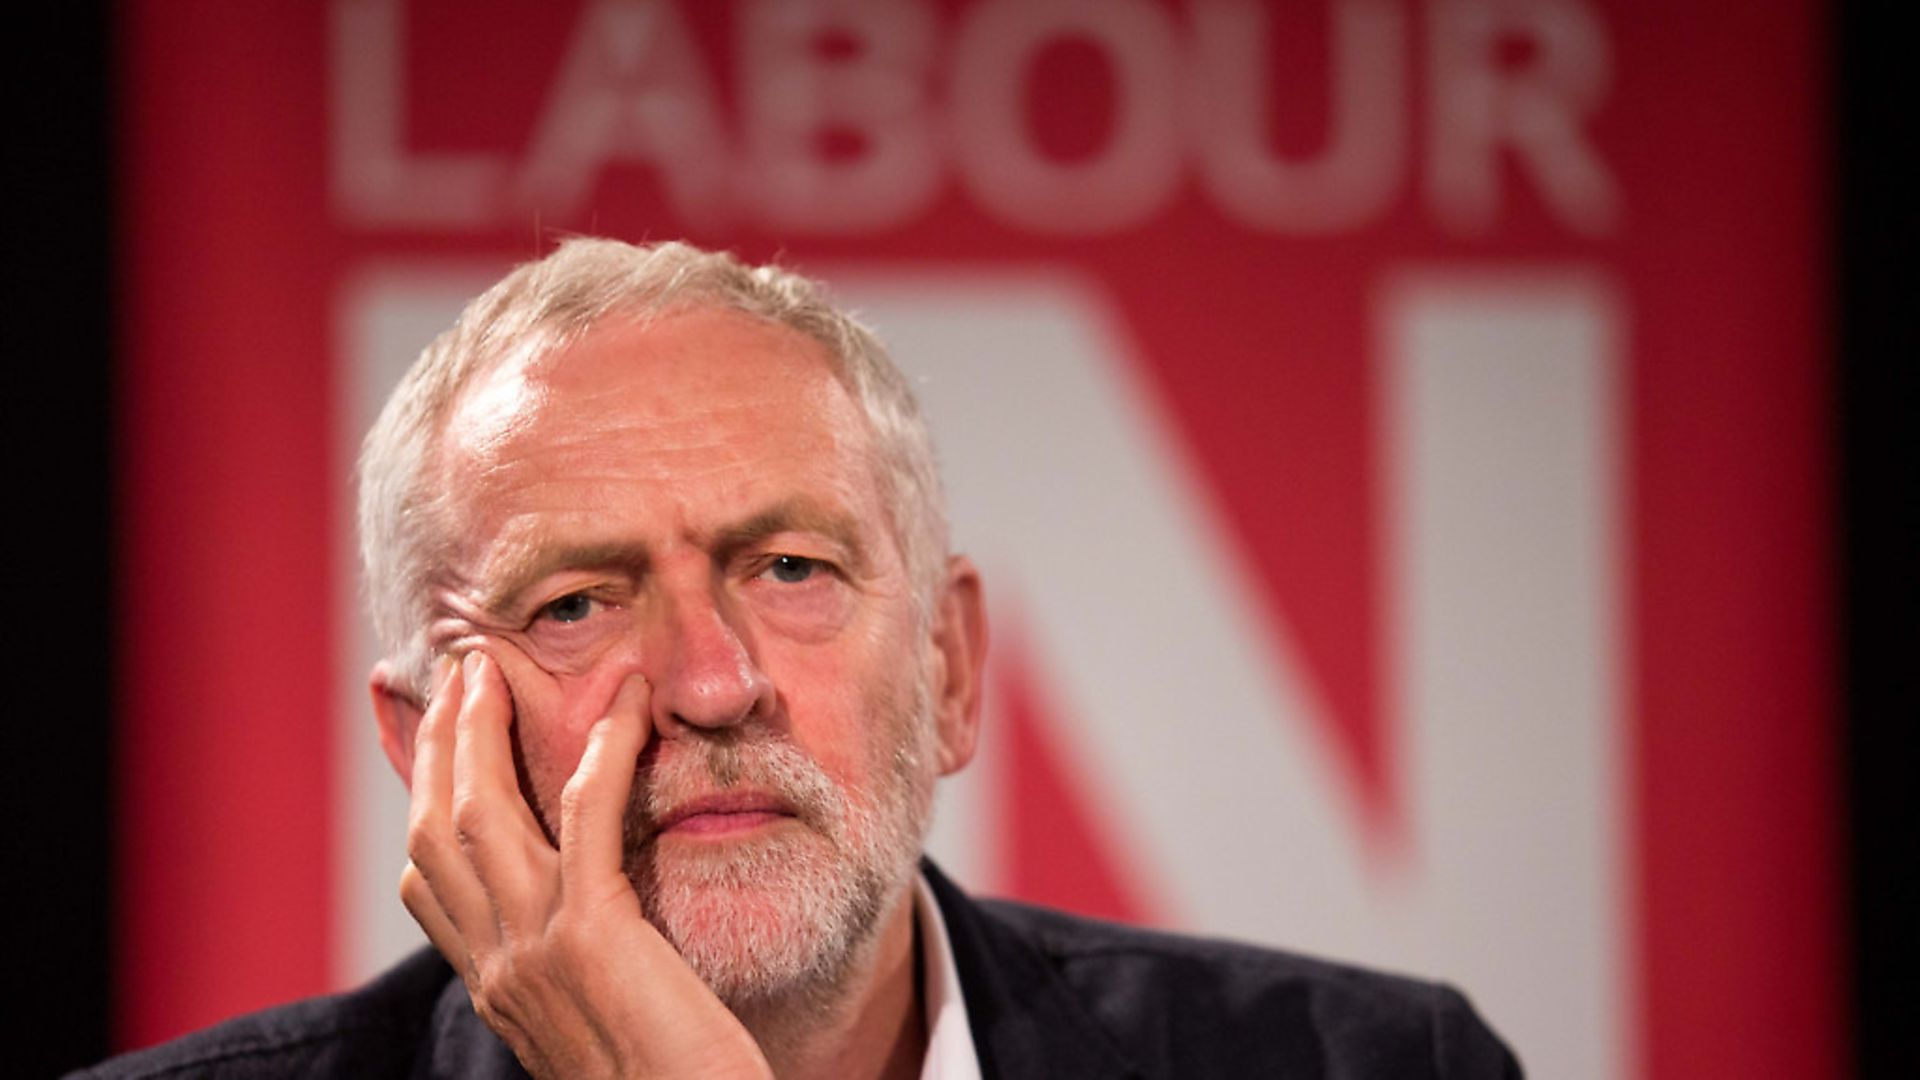 Jeremy Corbyn at a Rally to Remain in the EU (Photo by Rob Stothard/Getty Images) - Credit: Getty Images